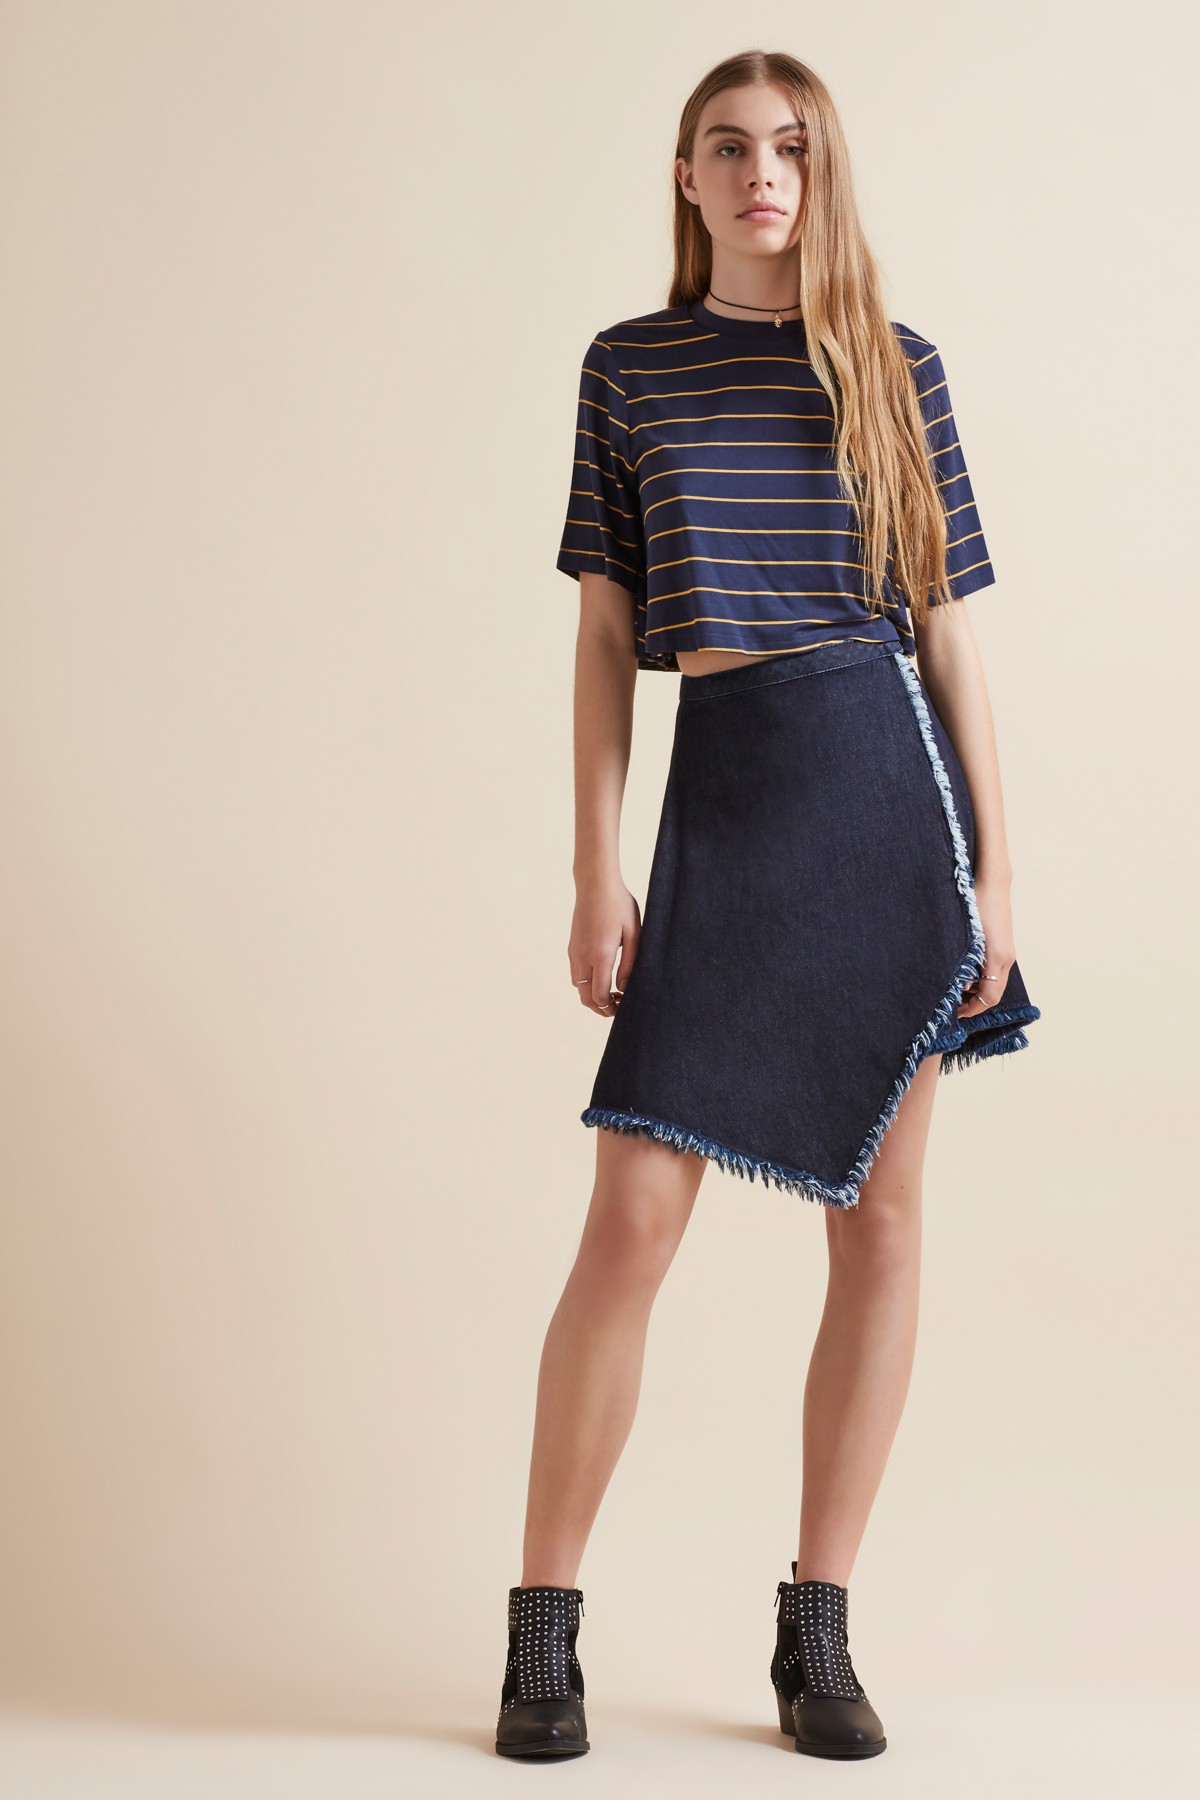 The Fifth Deep Valley Top  +  Front Row Skirt .